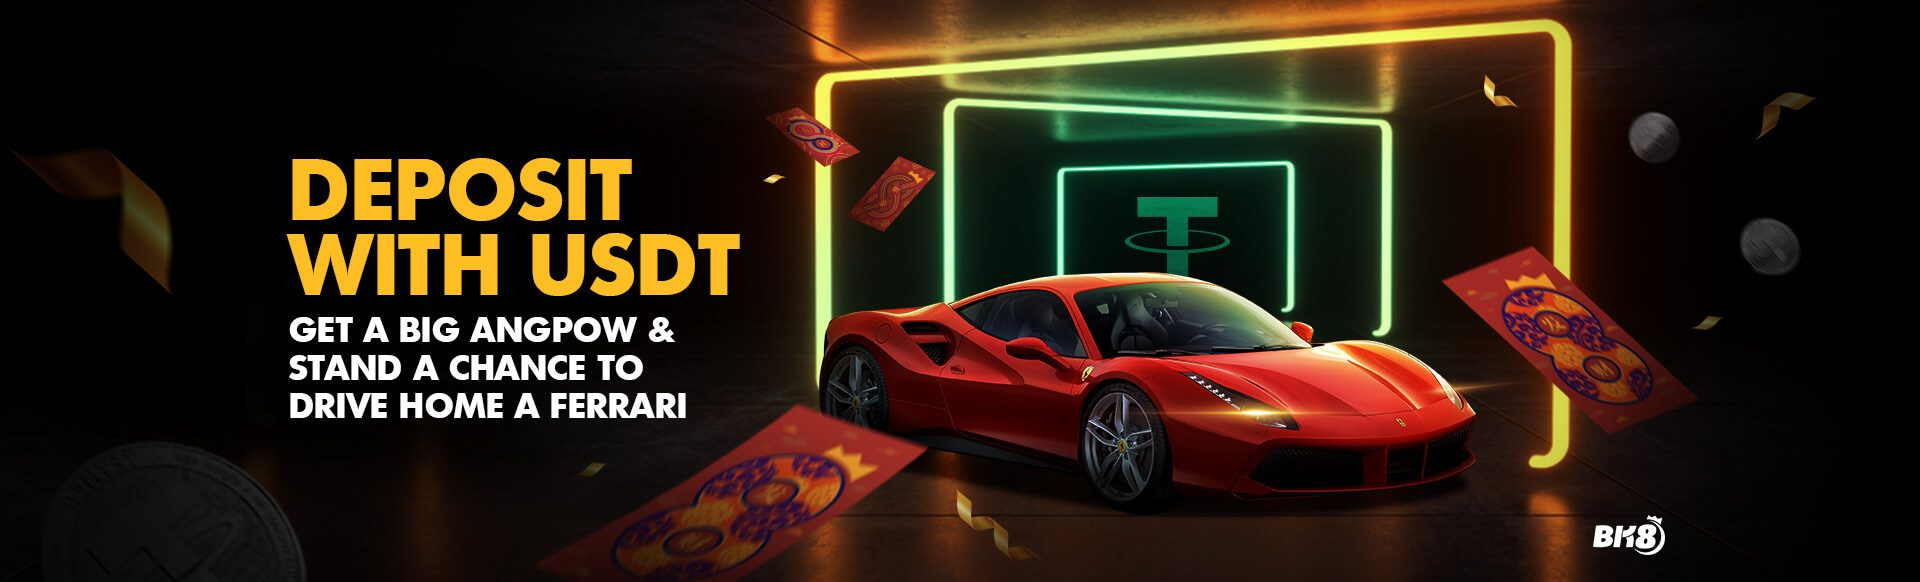 USDT Tether Betting Cryptocurrency Promotion